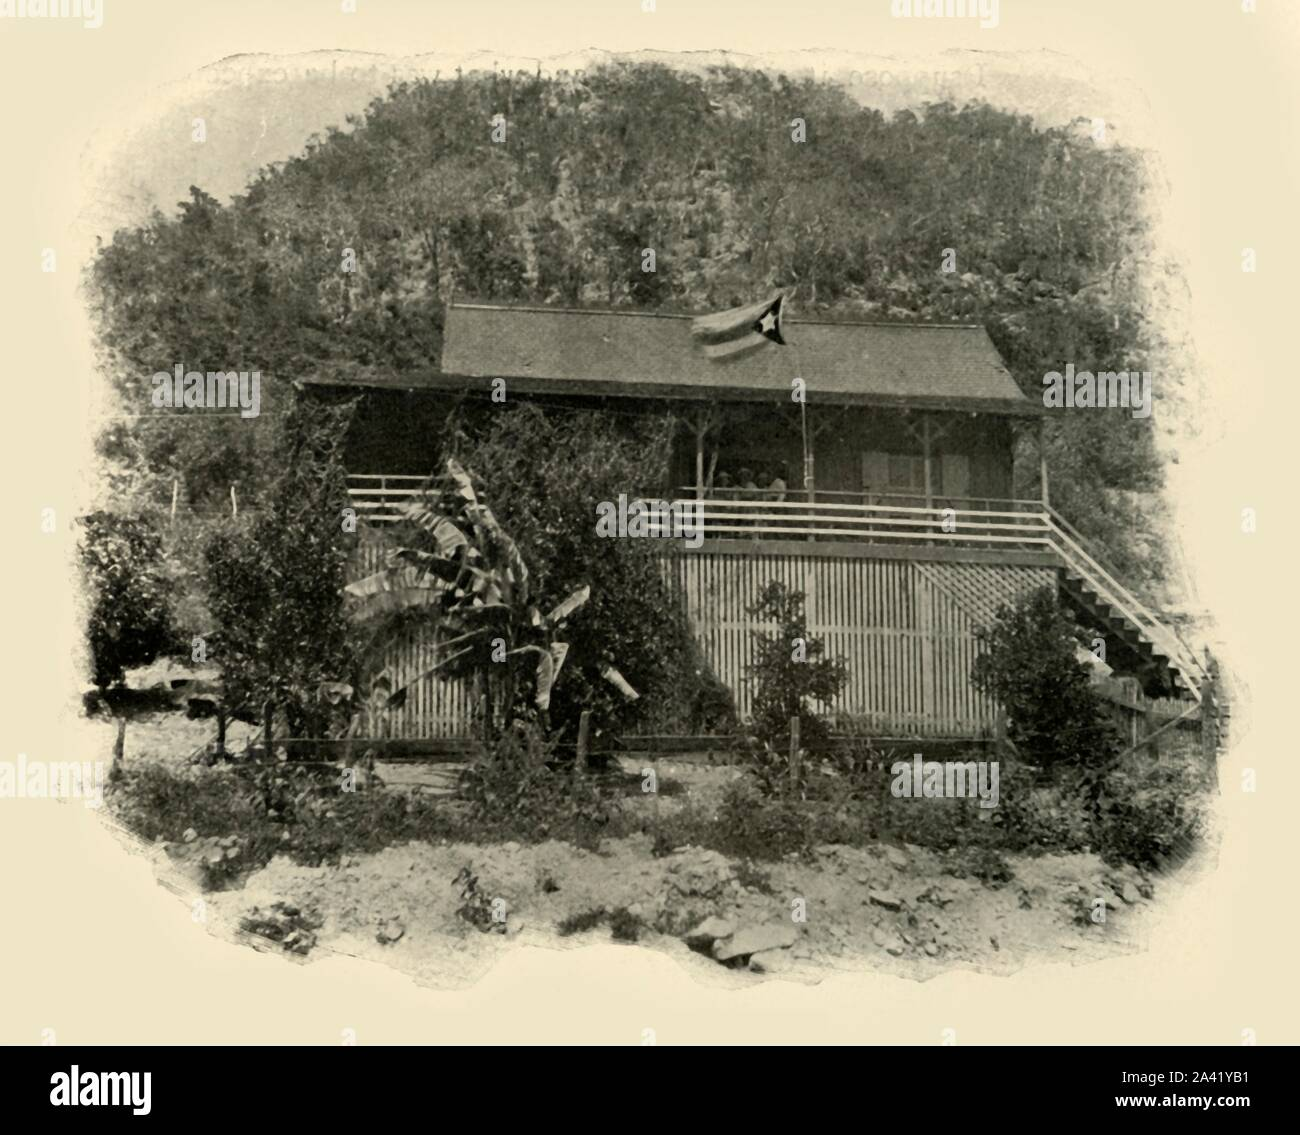 """'Cuban Headquarters at Daiquiri', Spanish-American War, June 1898, (1899). On 22 June 1898, American and Cuban troops attacked Spanish troops stationed at the small village of Daiquirí near Santiago de Cuba. From """"The Little I saw of Cuba"""" by Burr McIntosh, with photographs by the author. (In 1898, American actor and journalist William Burr McIntosh went to Cuba to cover the Spanish-American War for """"Leslie's Weekly"""" as a reporter and photographer). [F. Tennyson Neely, London & New York, 1899] Stock Photo"""